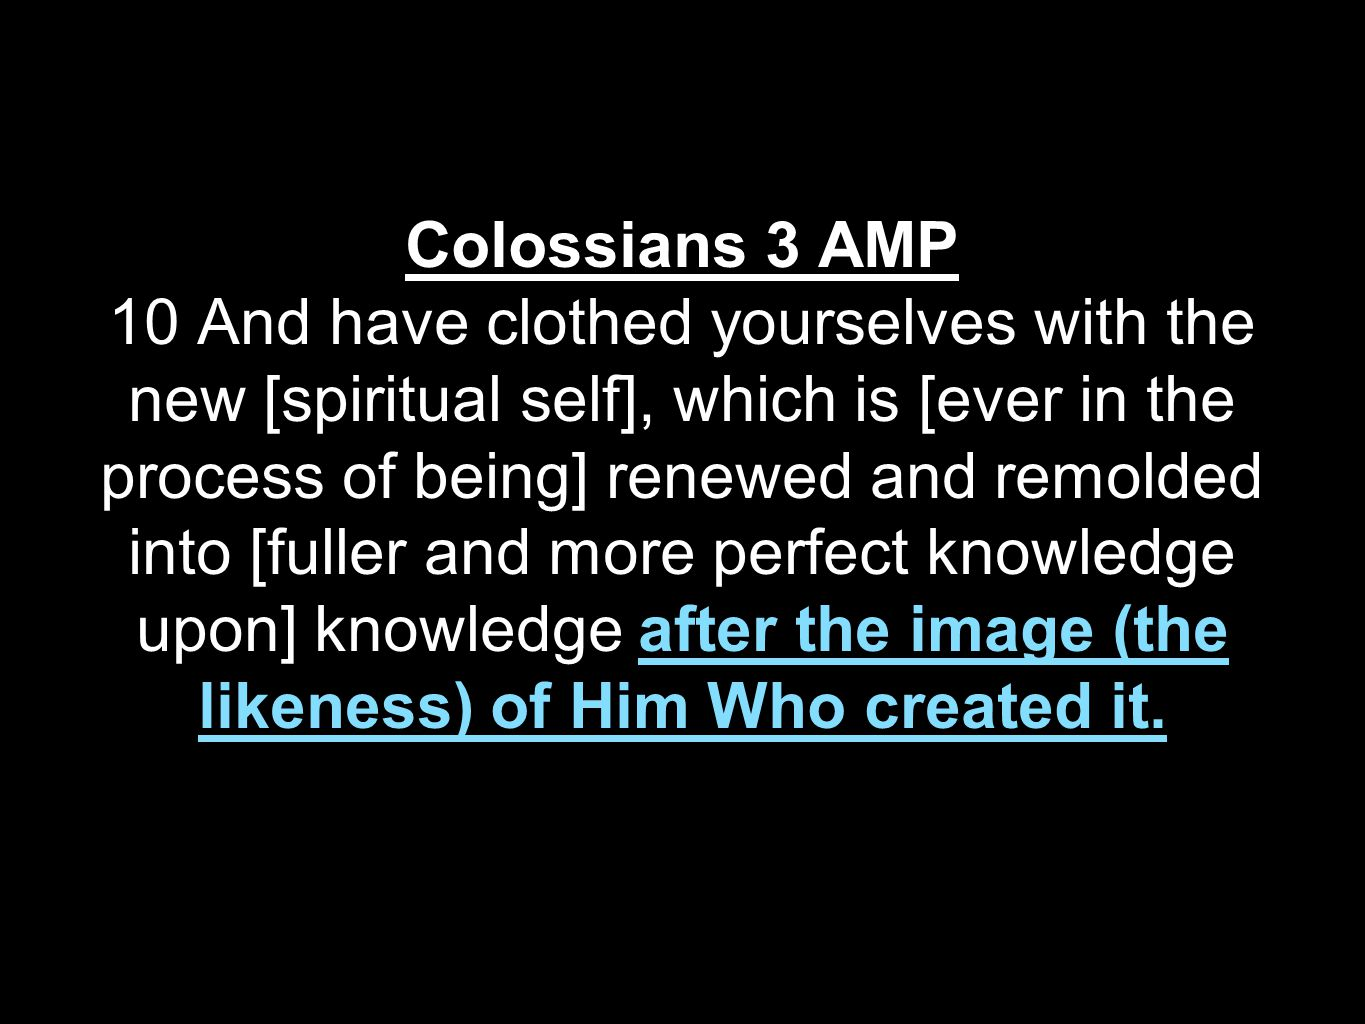 Colossians 3 AMP 10 And have clothed yourselves with the new [spiritual self], which is [ever in the process of being] renewed and remolded into [fuller and more perfect knowledge upon] knowledge after the image (the likeness) of Him Who created it.